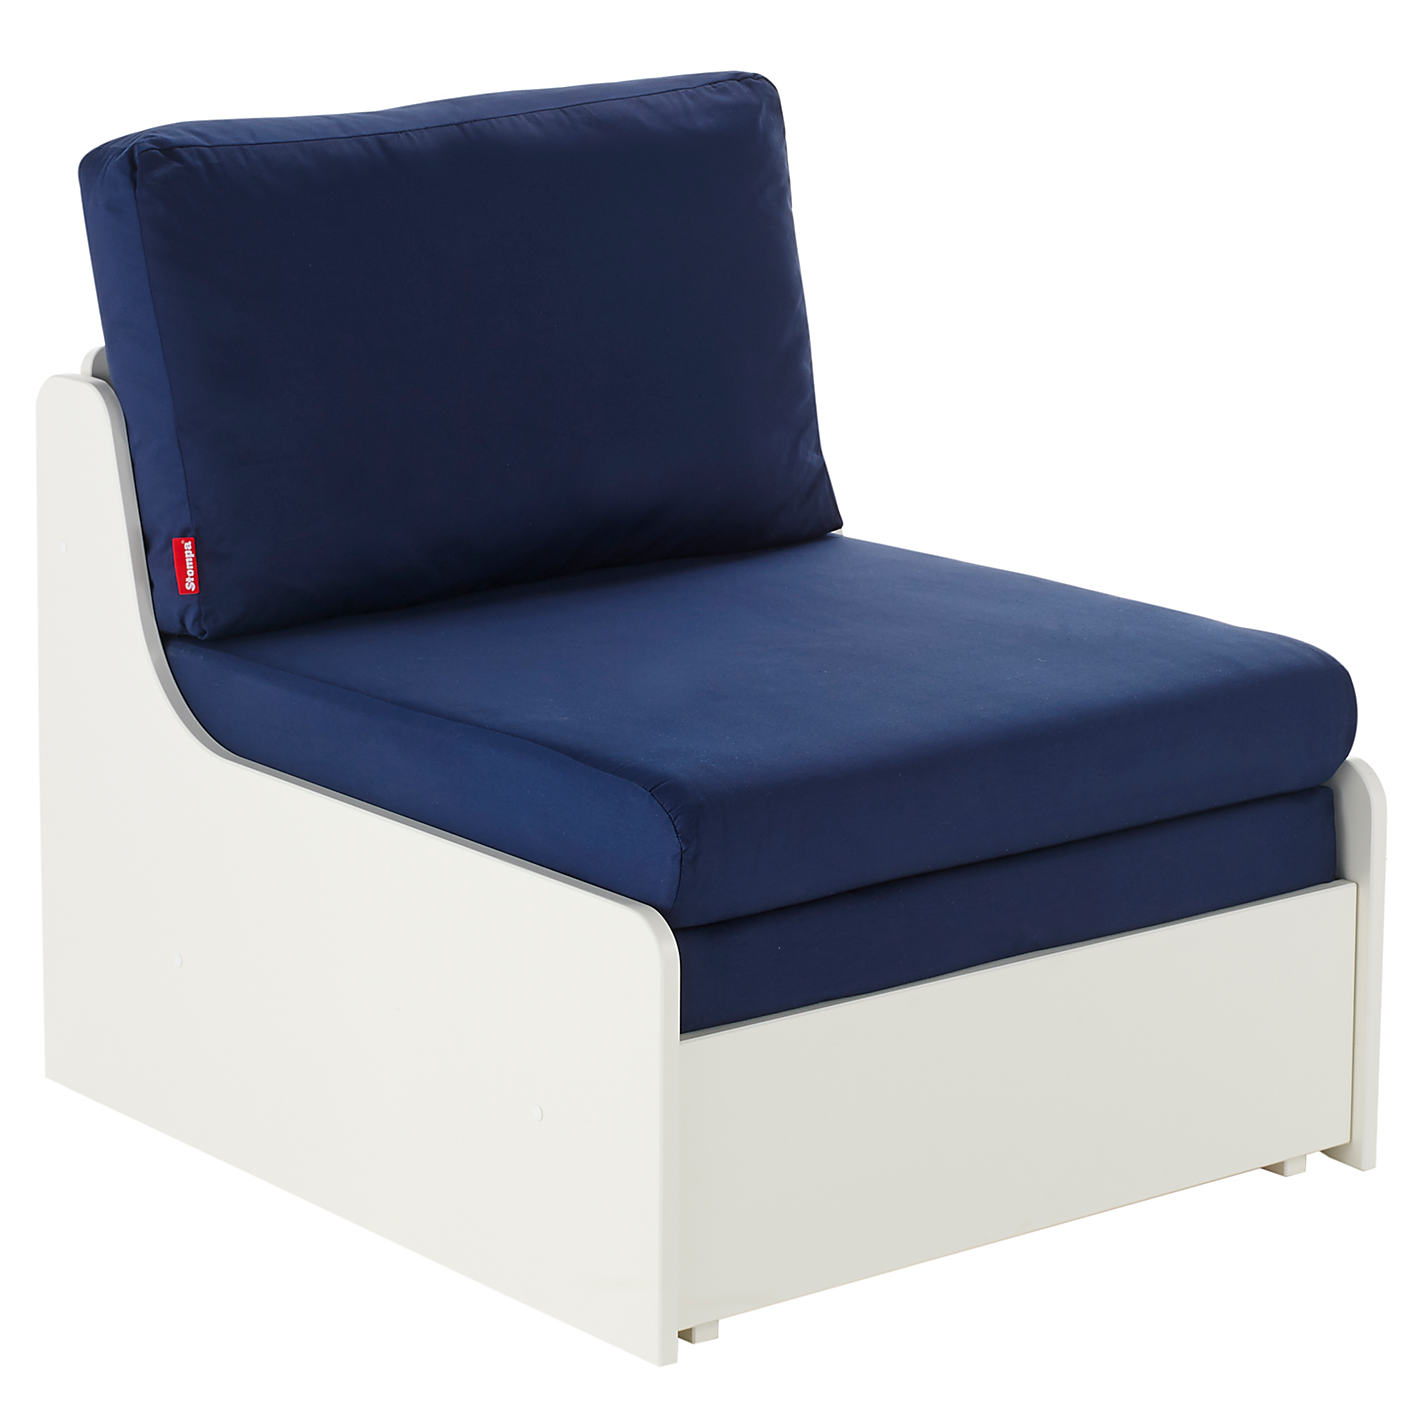 Buy Stompa Uno S Plus Single Chair Bed Online at johnlewis.com ...